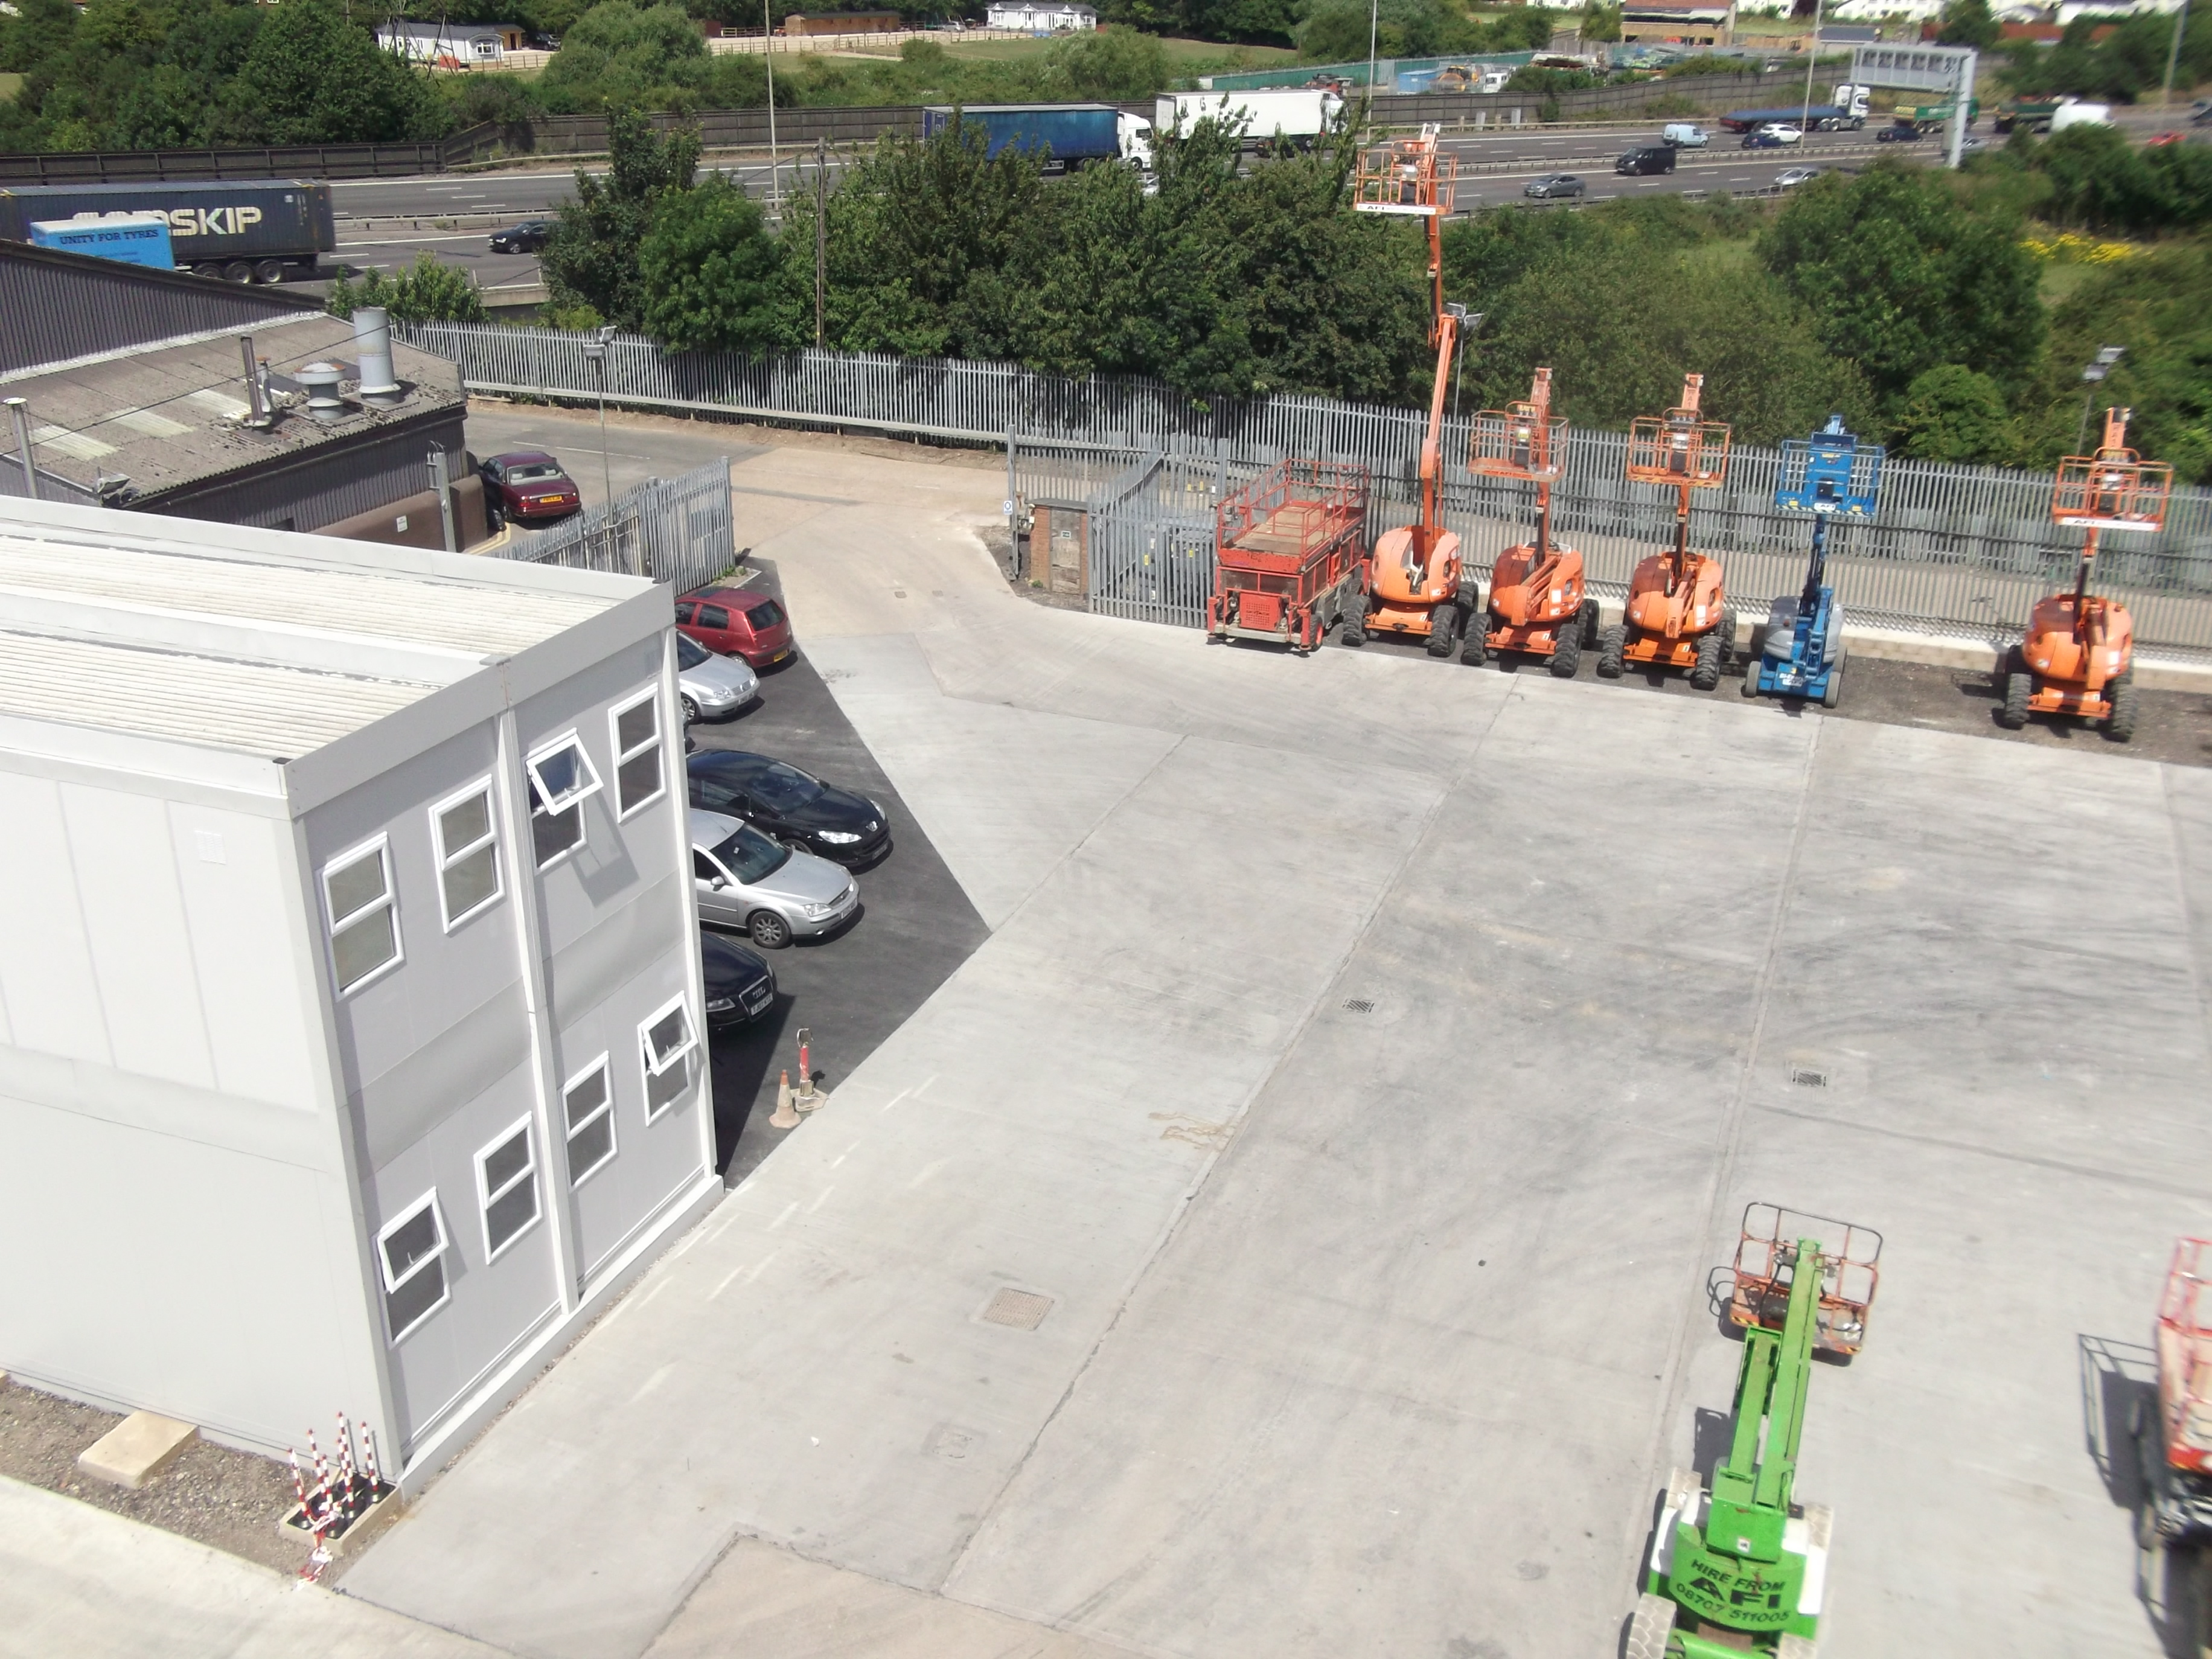 Press Release - AFI Invests £200,000 In London West Depot